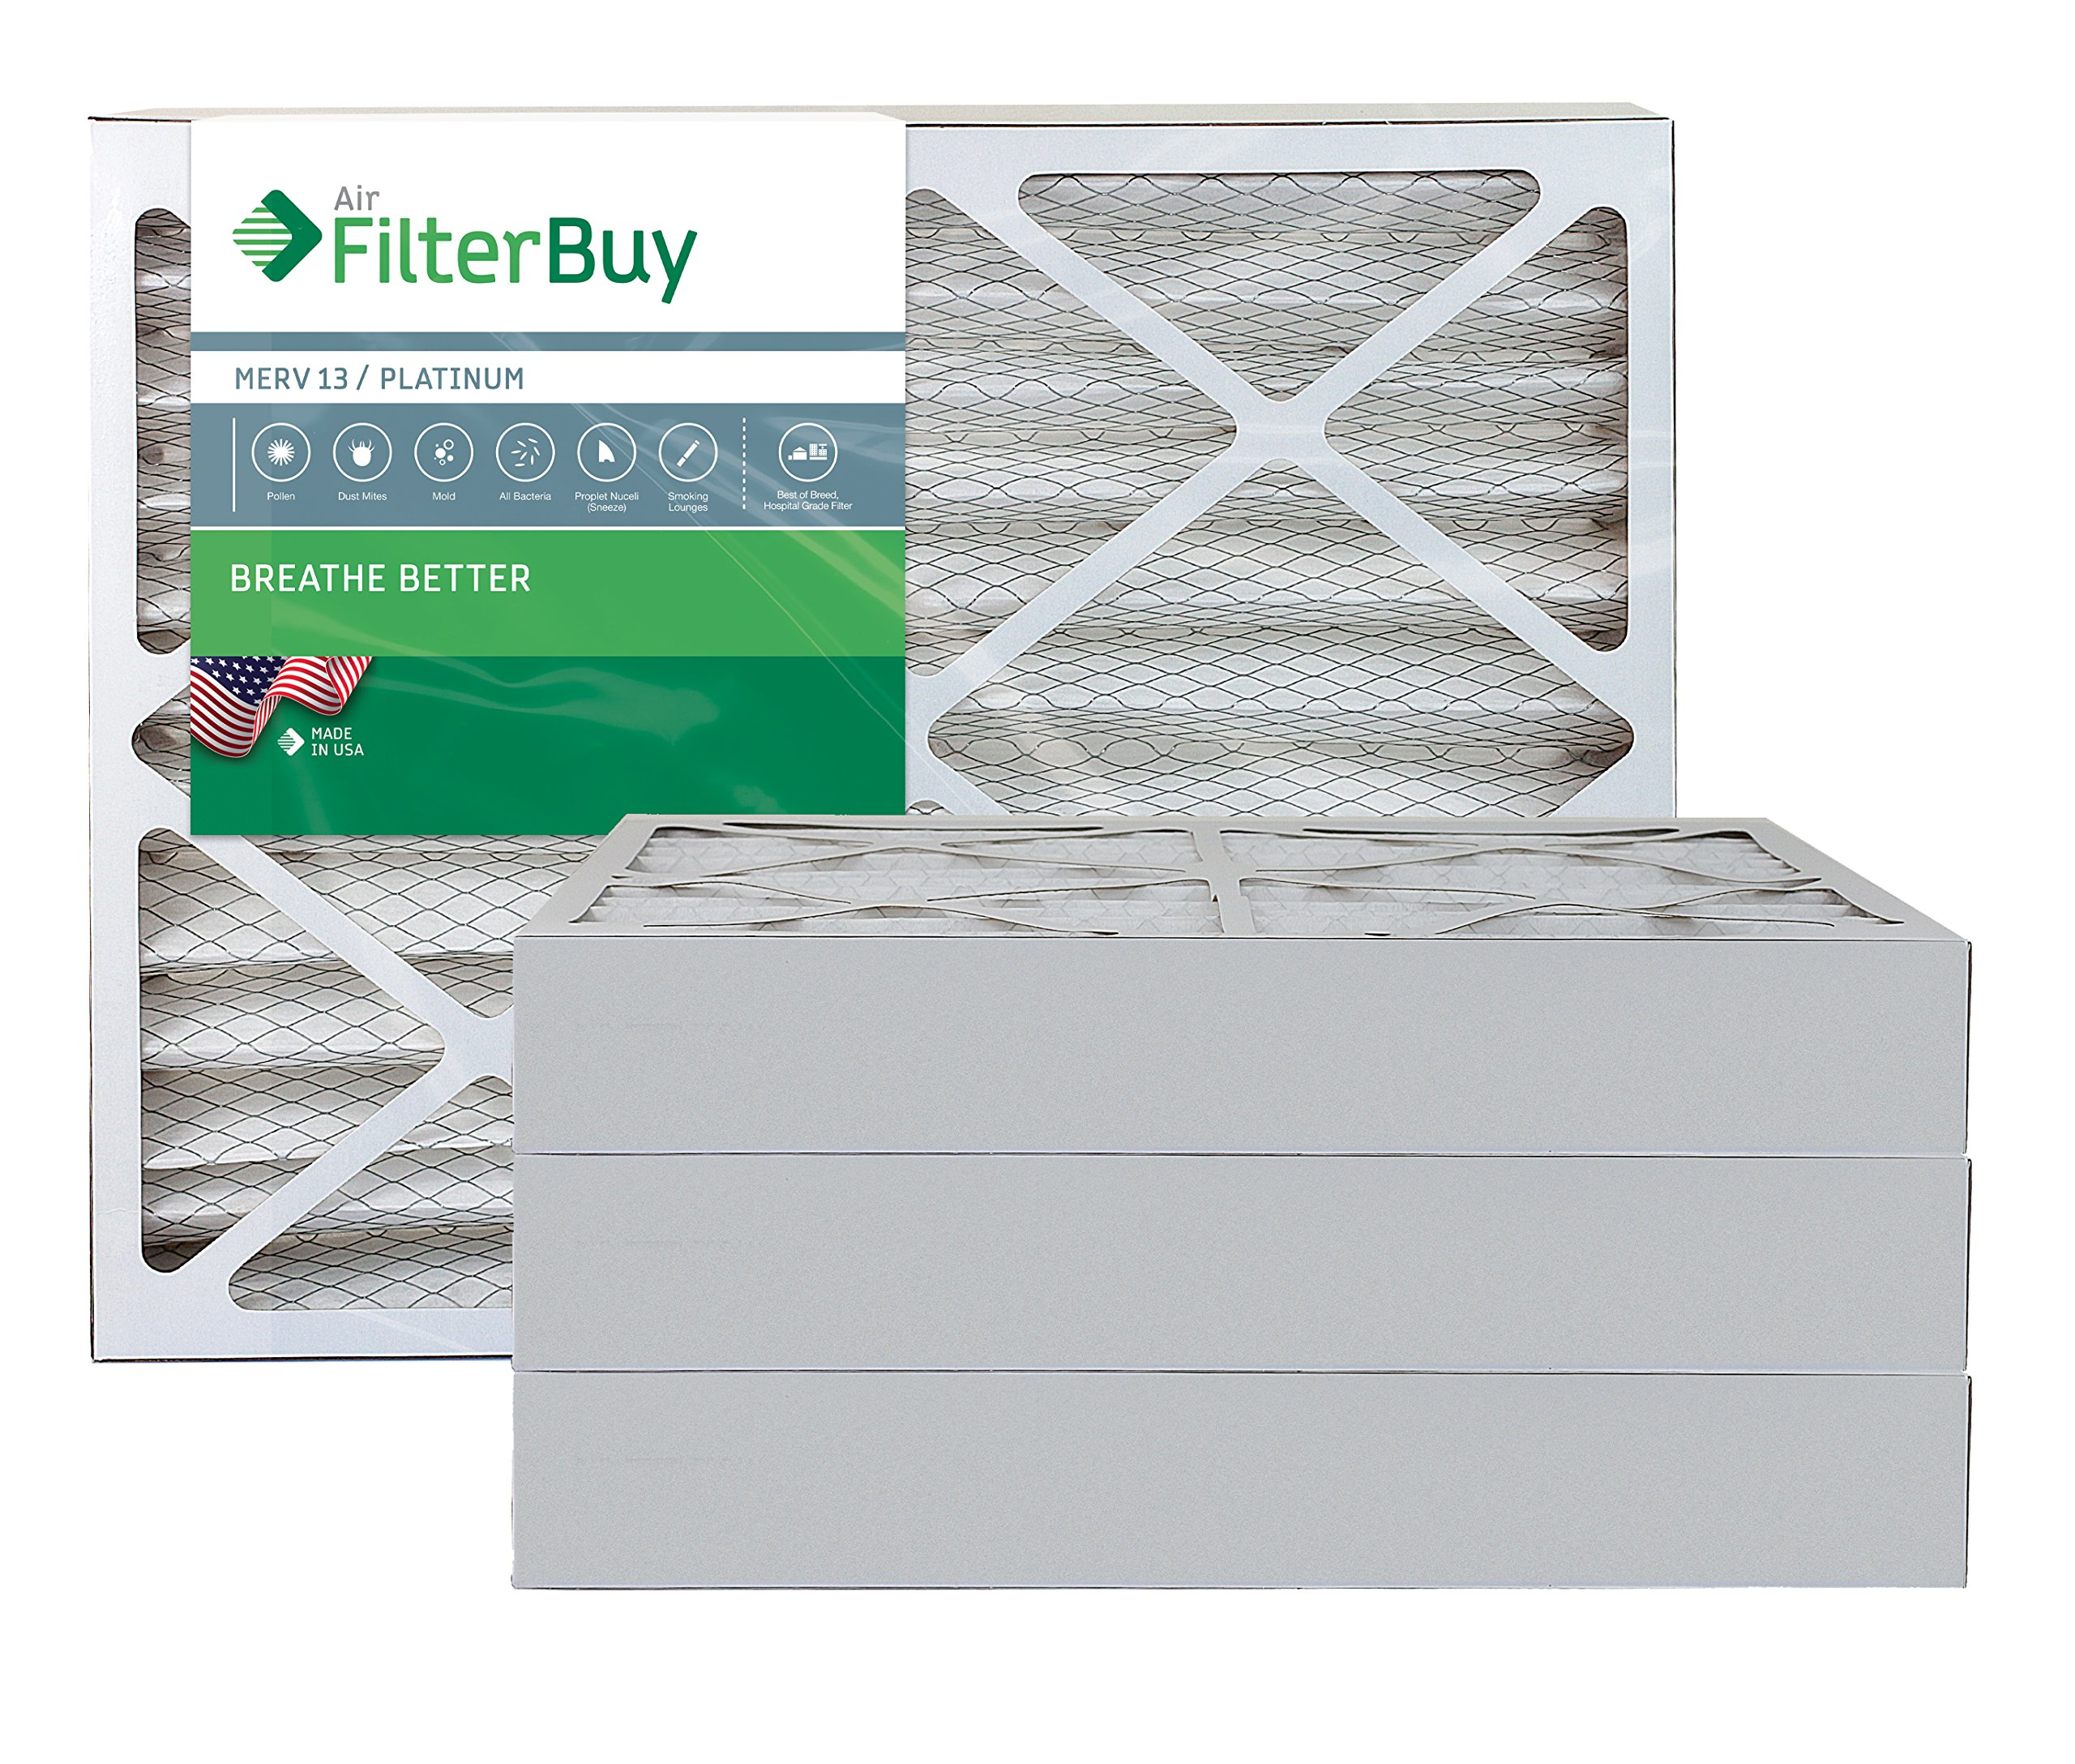 AFB Platinum MERV 13 20x23x4 Pleated AC Furnace Air Filter. Pack of 4 Filters. 100% produced in the USA.